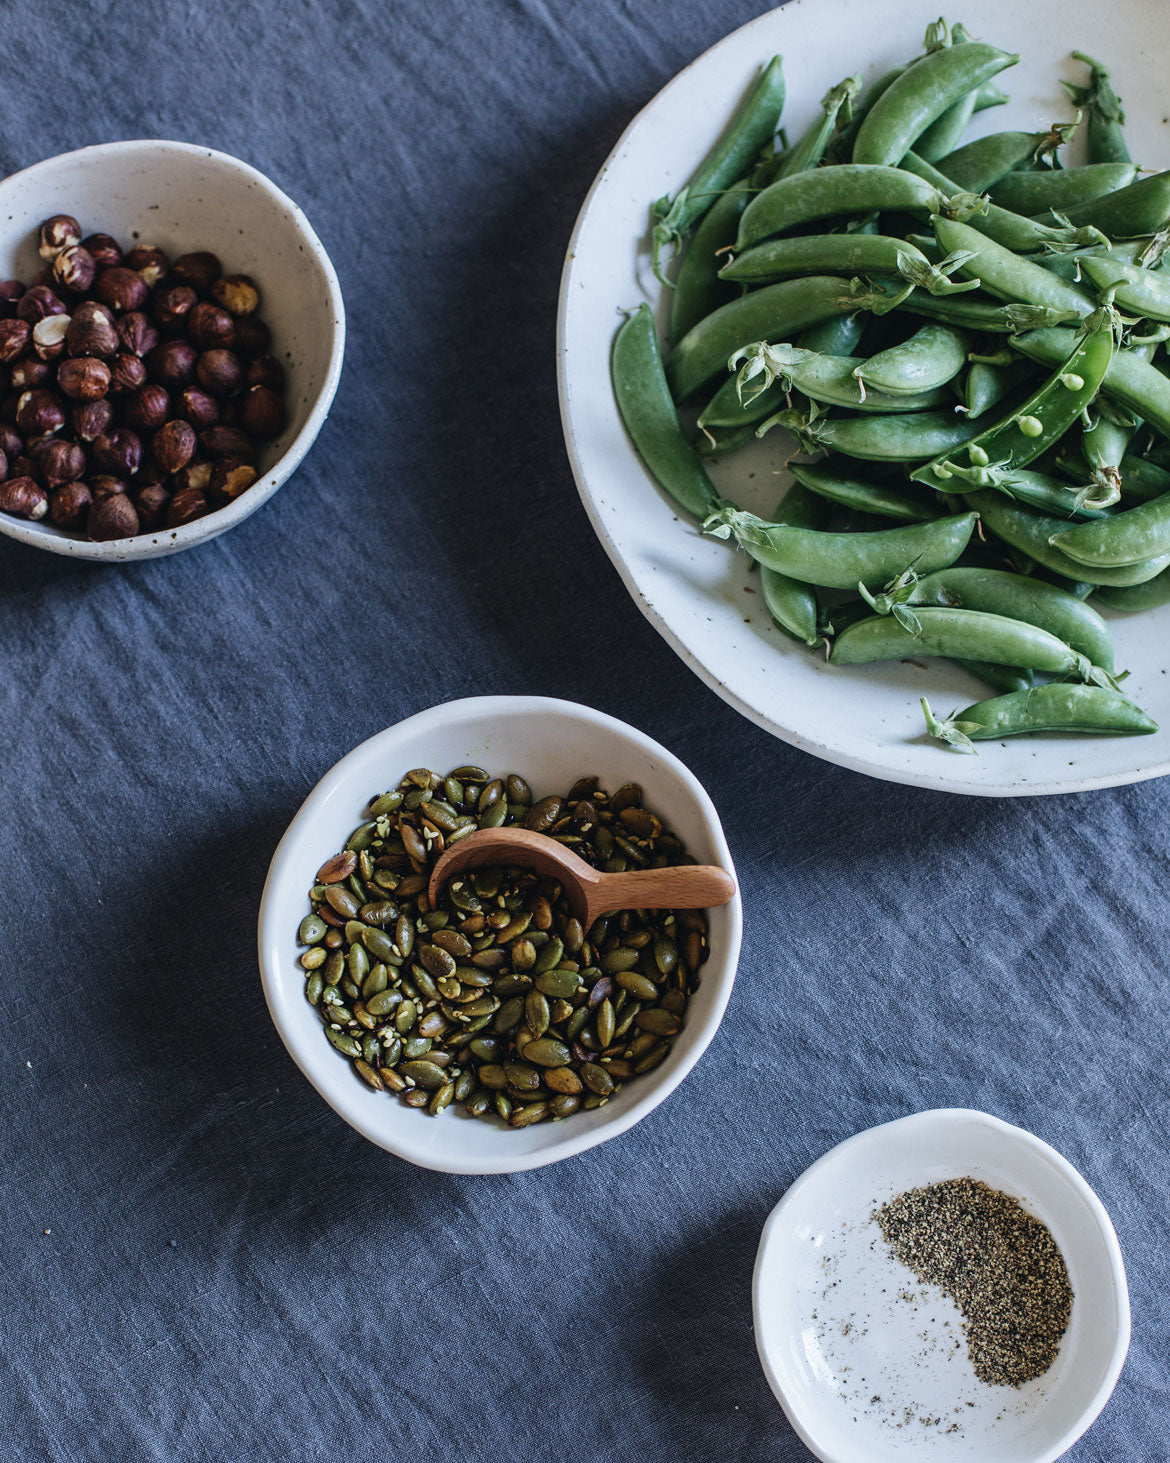 Little handmade bowls with pepitas, hazelnuts and pepper